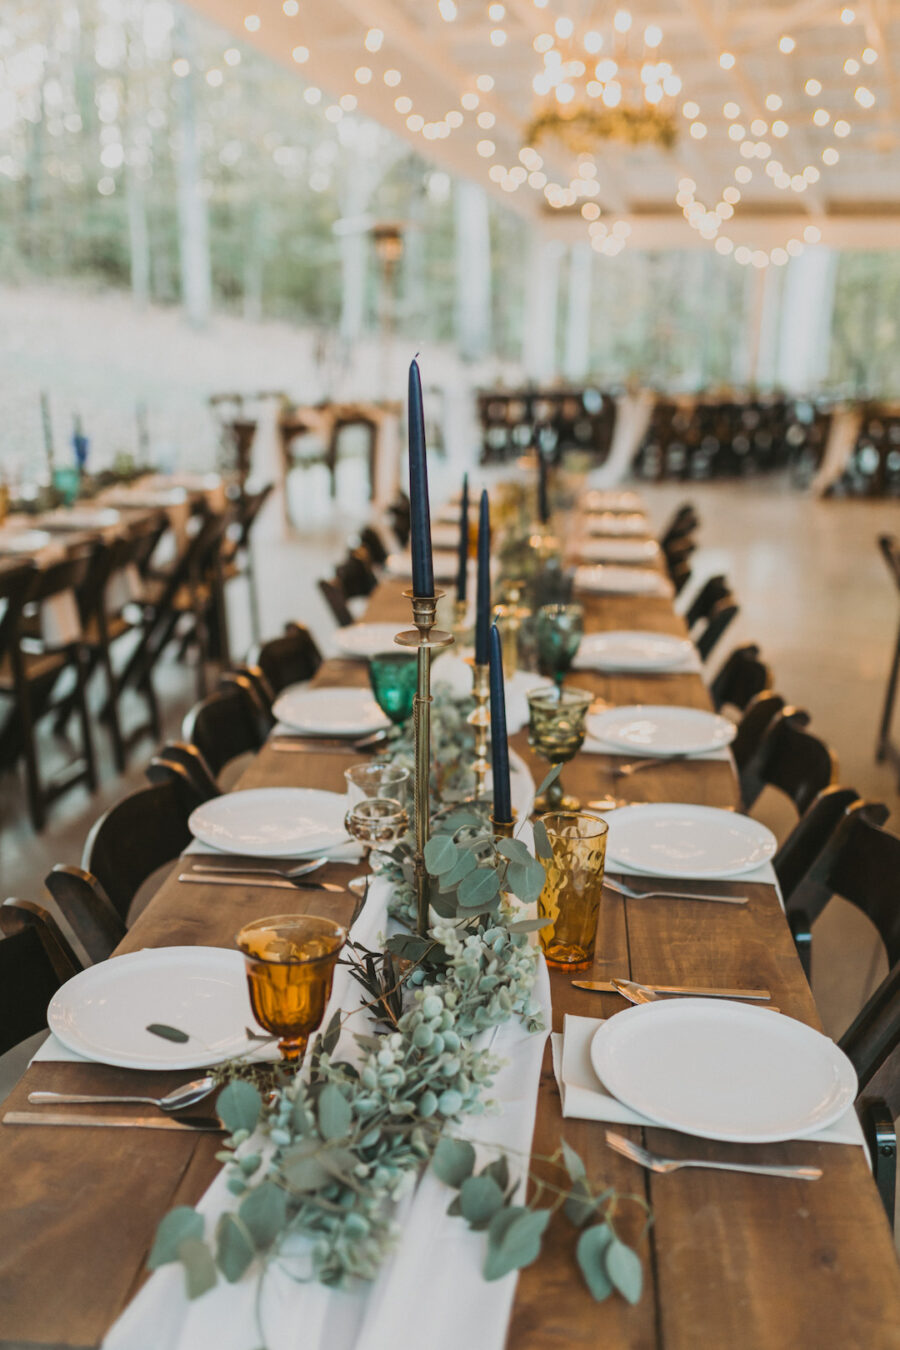 Family style wedding table with greenery